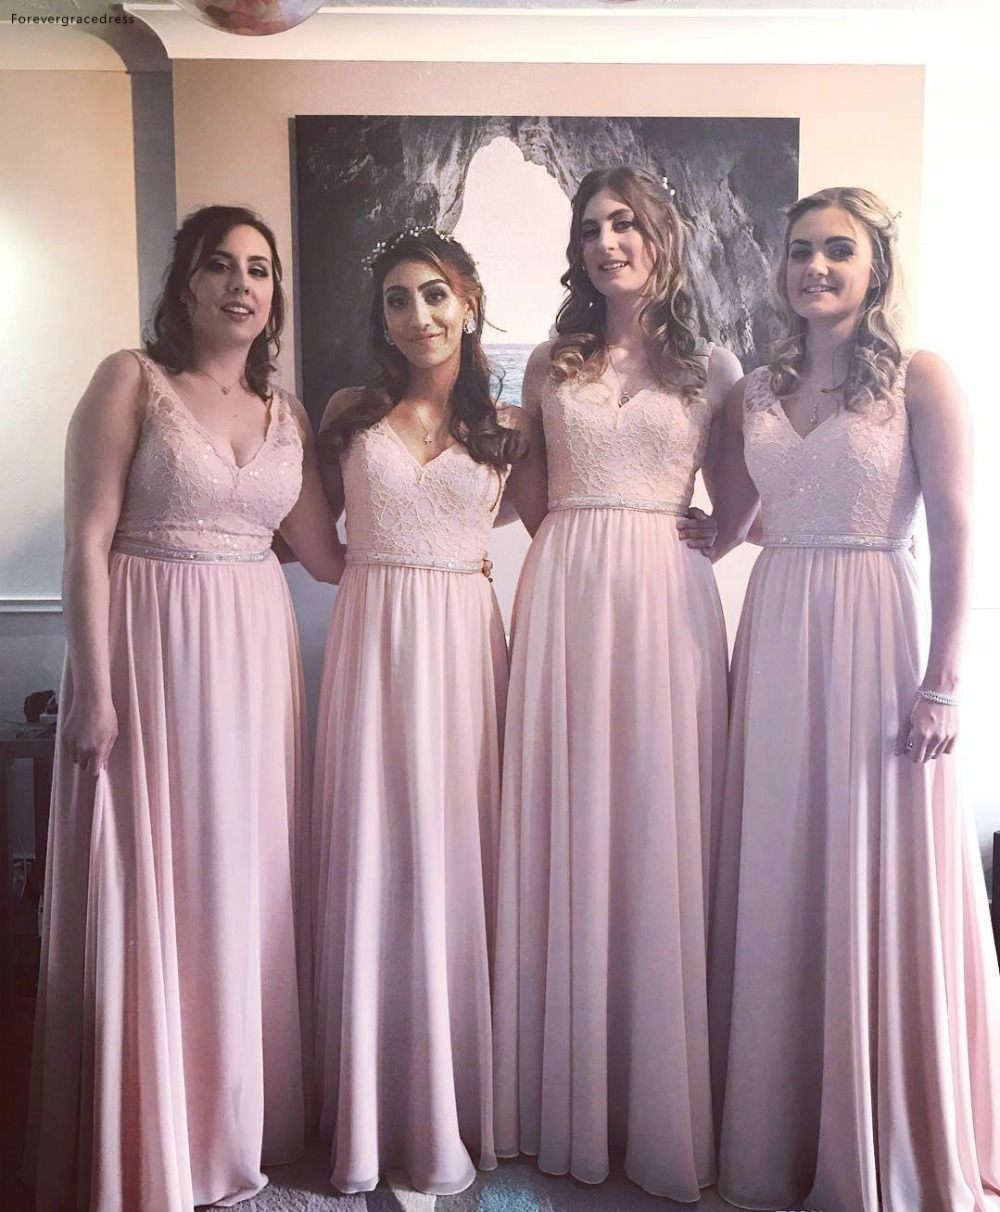 Us 81 6 49 Off Pink Color Bridesmaid Dresses Chiffon Boho Summer Country Garden Wedding Party Guest Maid Of Honor Gowns Plus Size Custom Made In